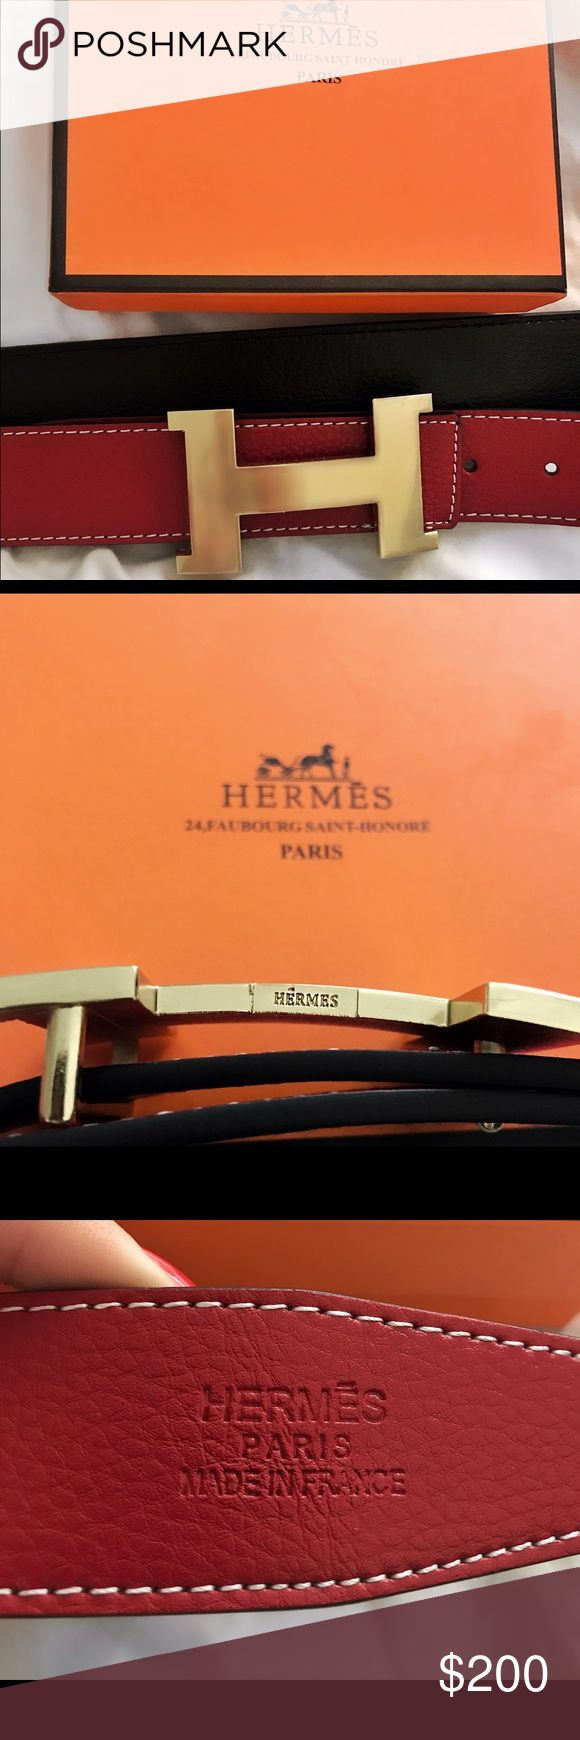 Hermes reversal belt black / red size UA Brand new UA Hermes belt. Black and red reversal. Never worn, looks absolutely perfect and contains box. Got it as a gift! It fits any size from a 26-31 as you can punch new holes. Hermes Accessories Belts